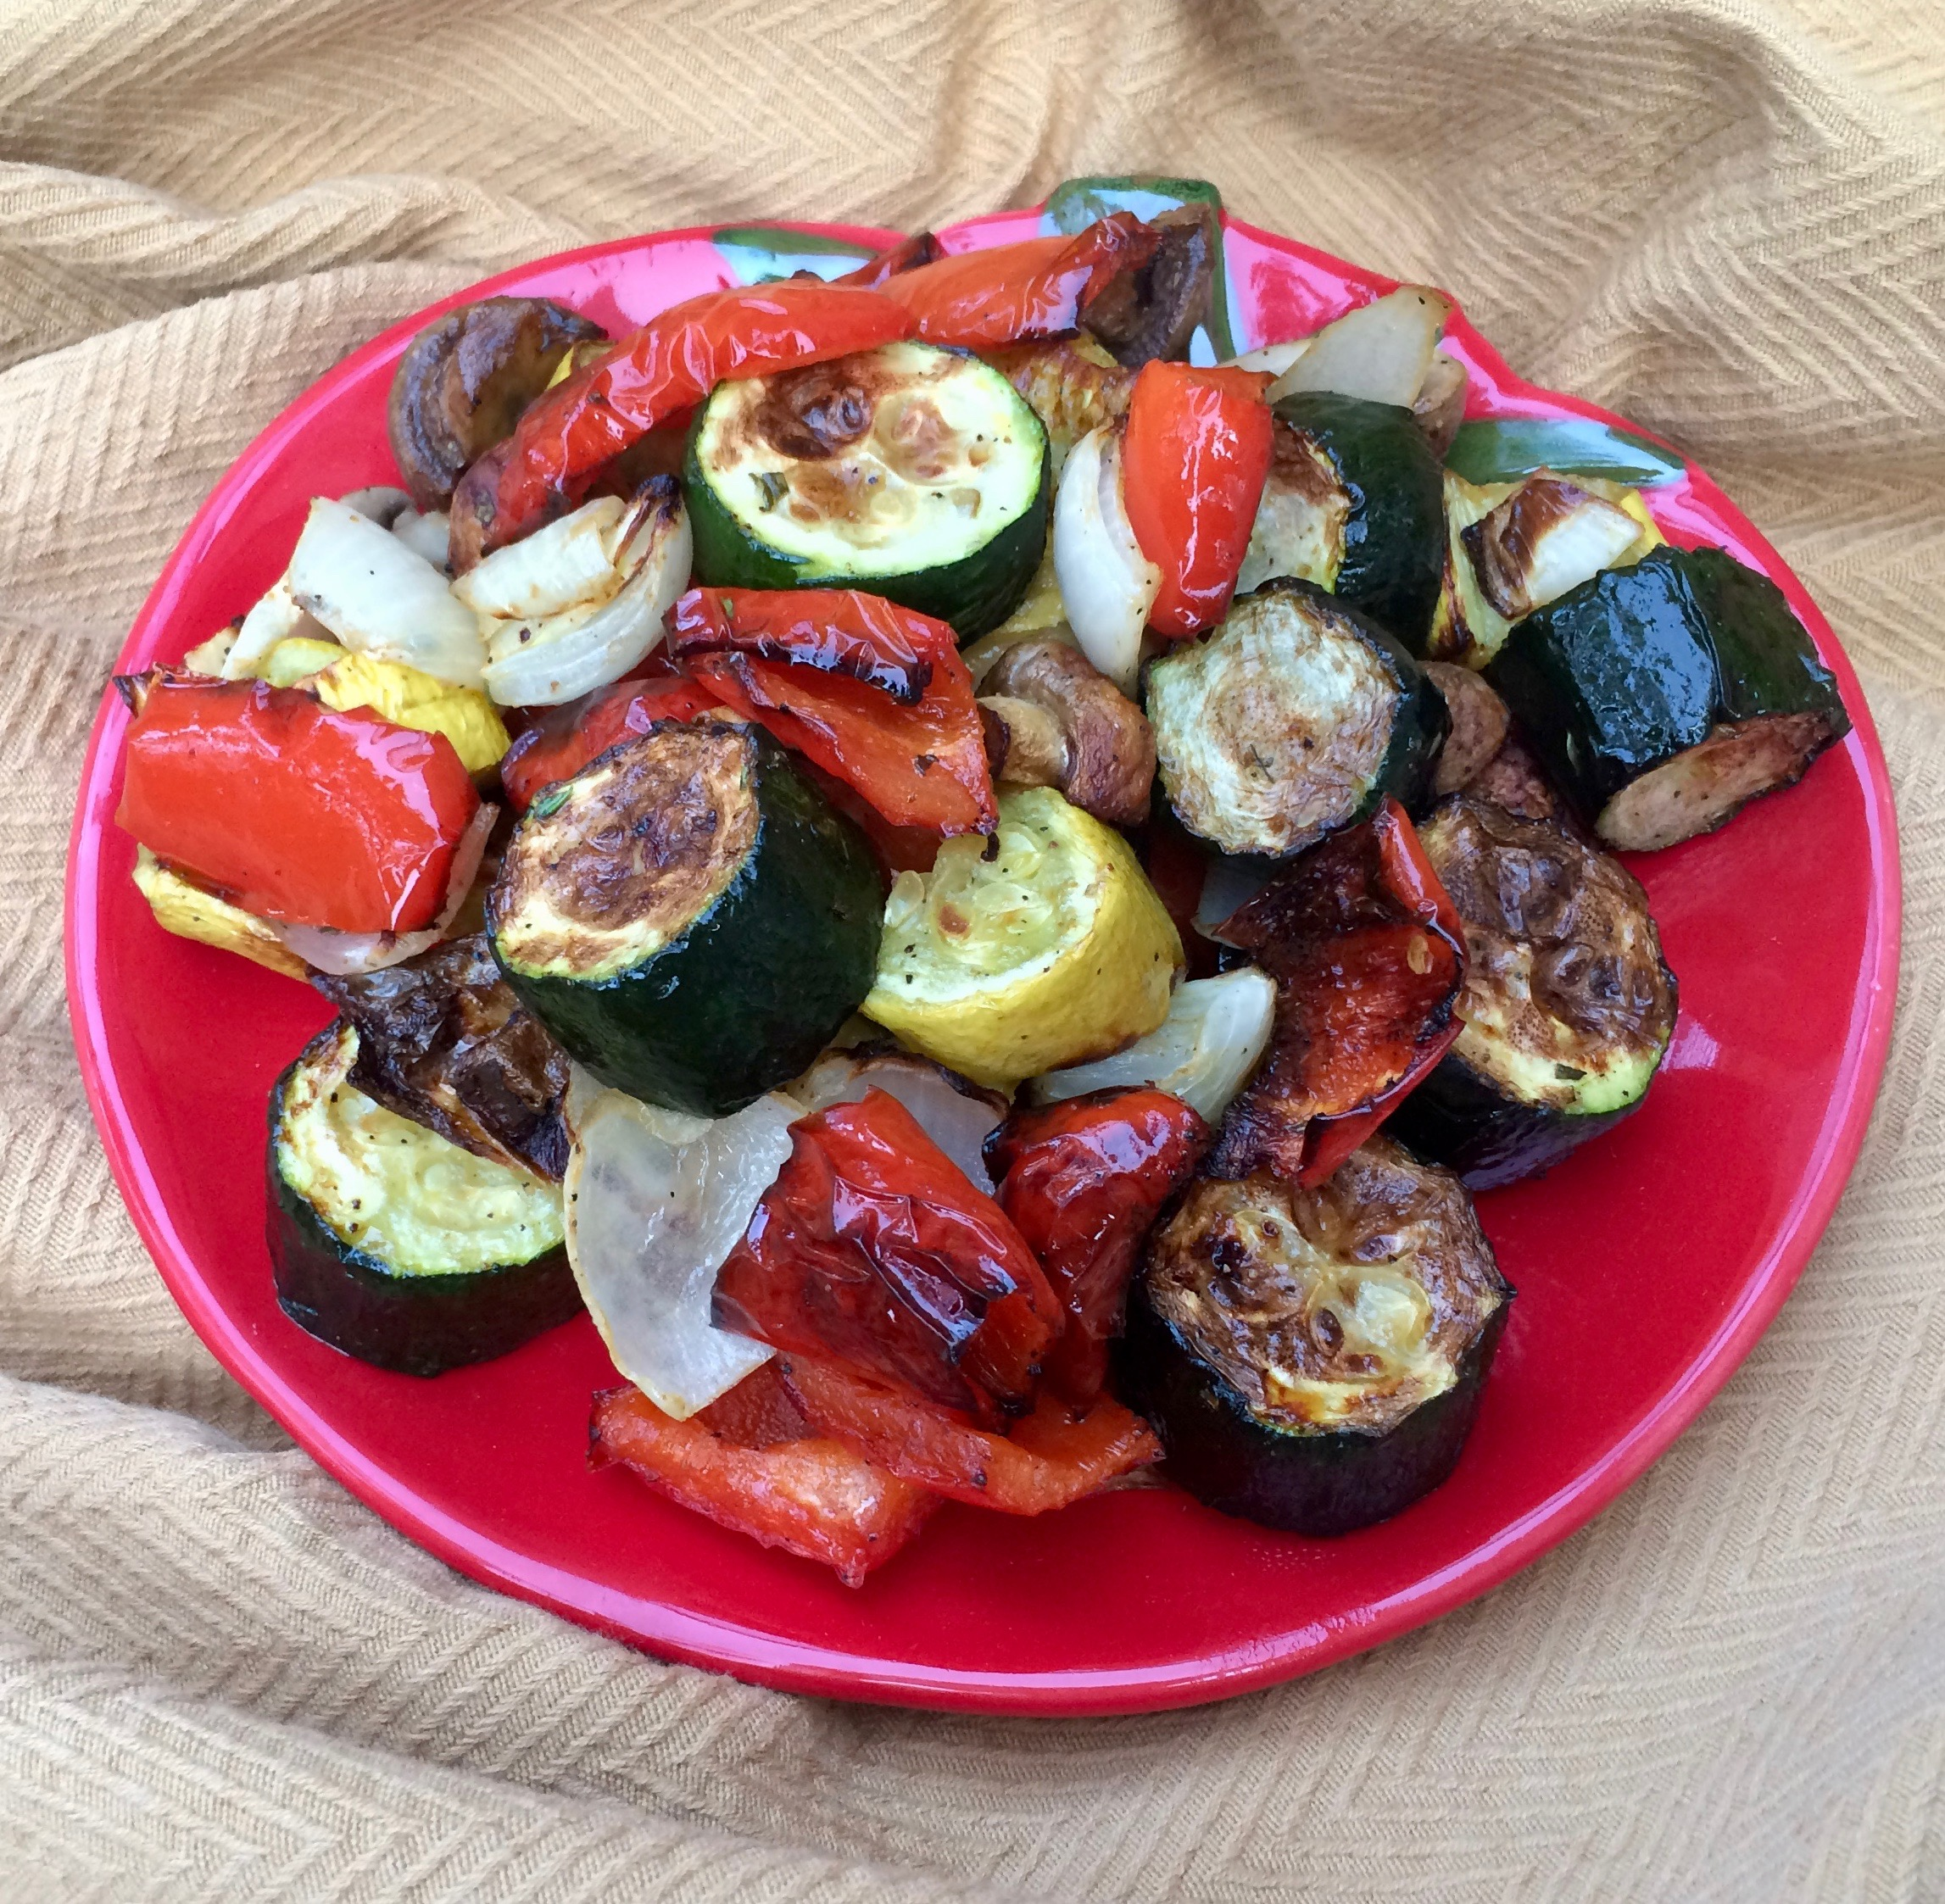 Roasted Rainbow Vegetables in the Air Fryer